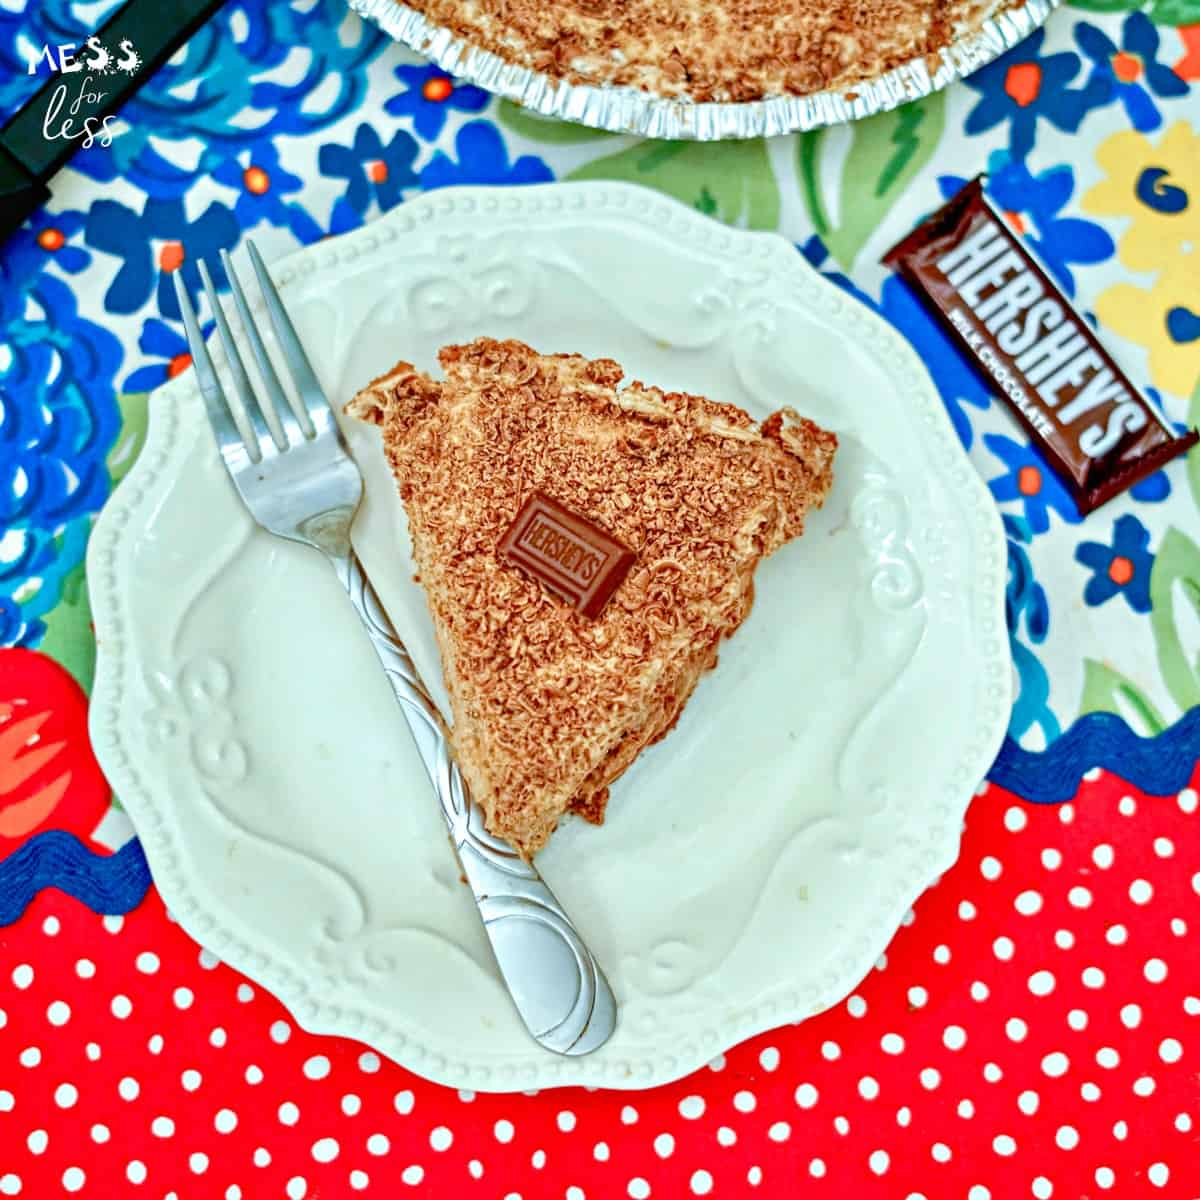 3 ingredient hershey's chocolate pie